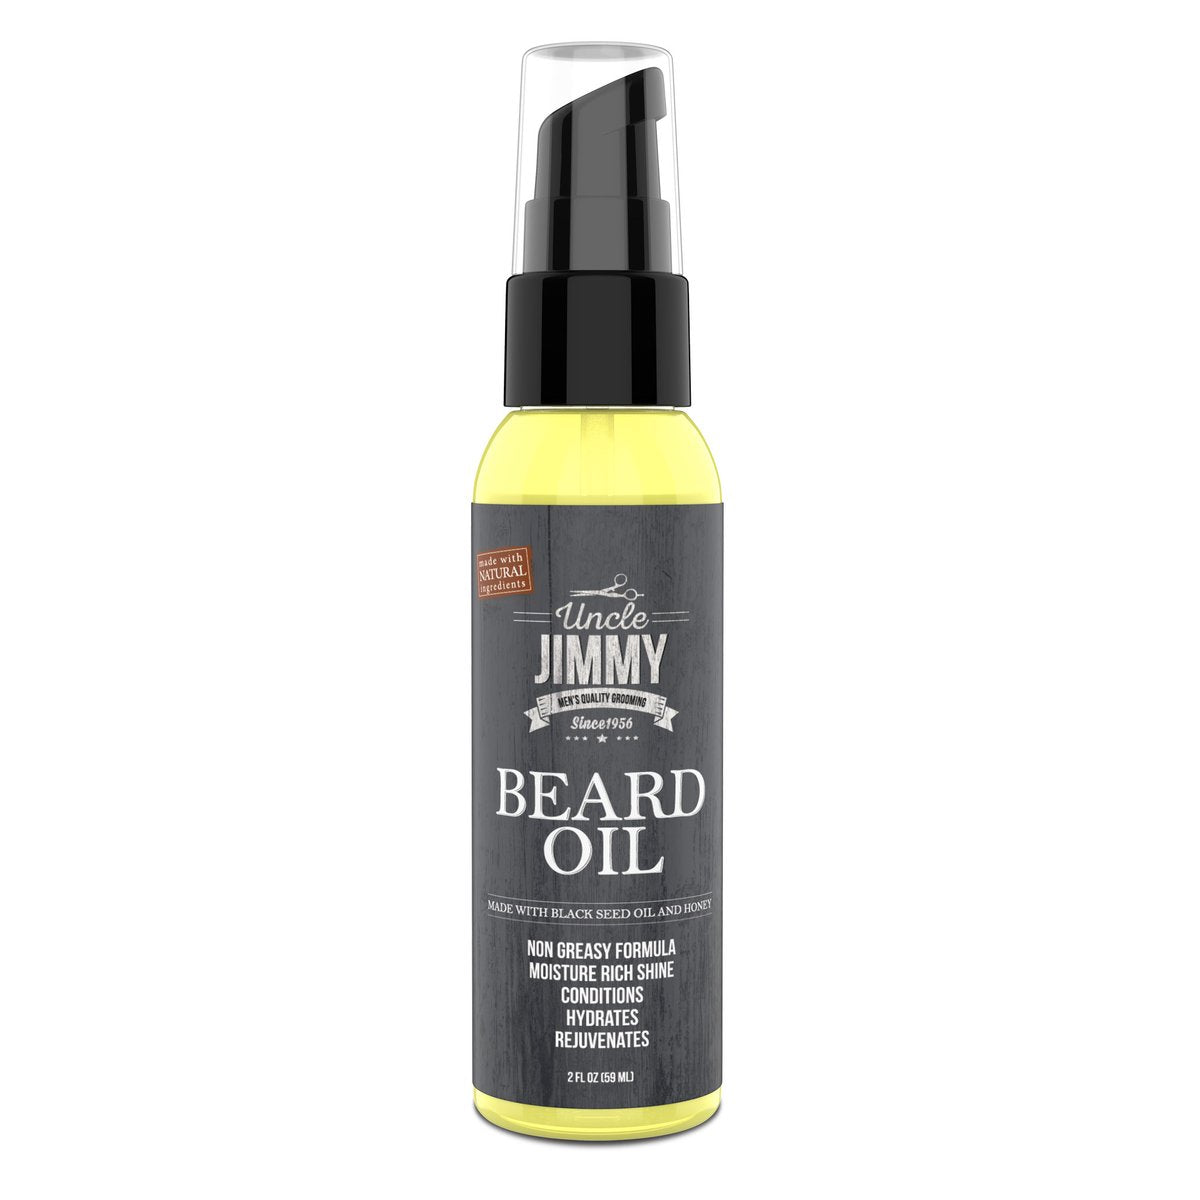 Uncle Jimmy Beard Oil